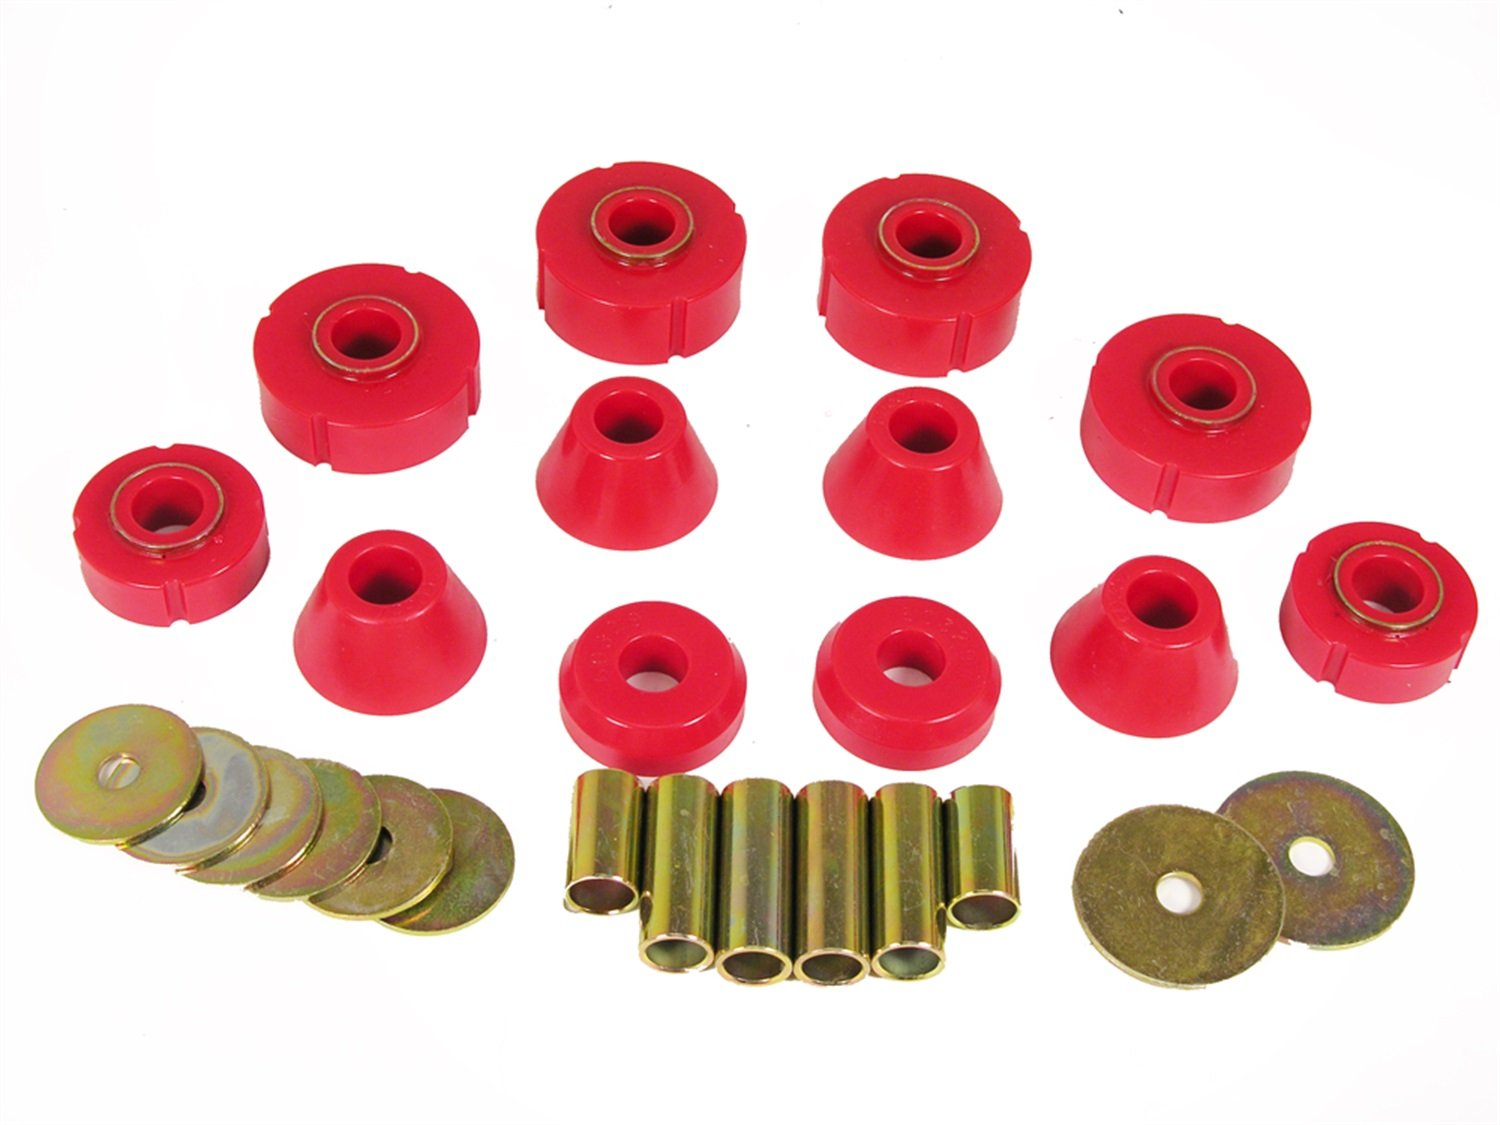 Prothane 7-101 Red Body and Standard Cab Mount Bushing Kit - 12 Piece by Prothane